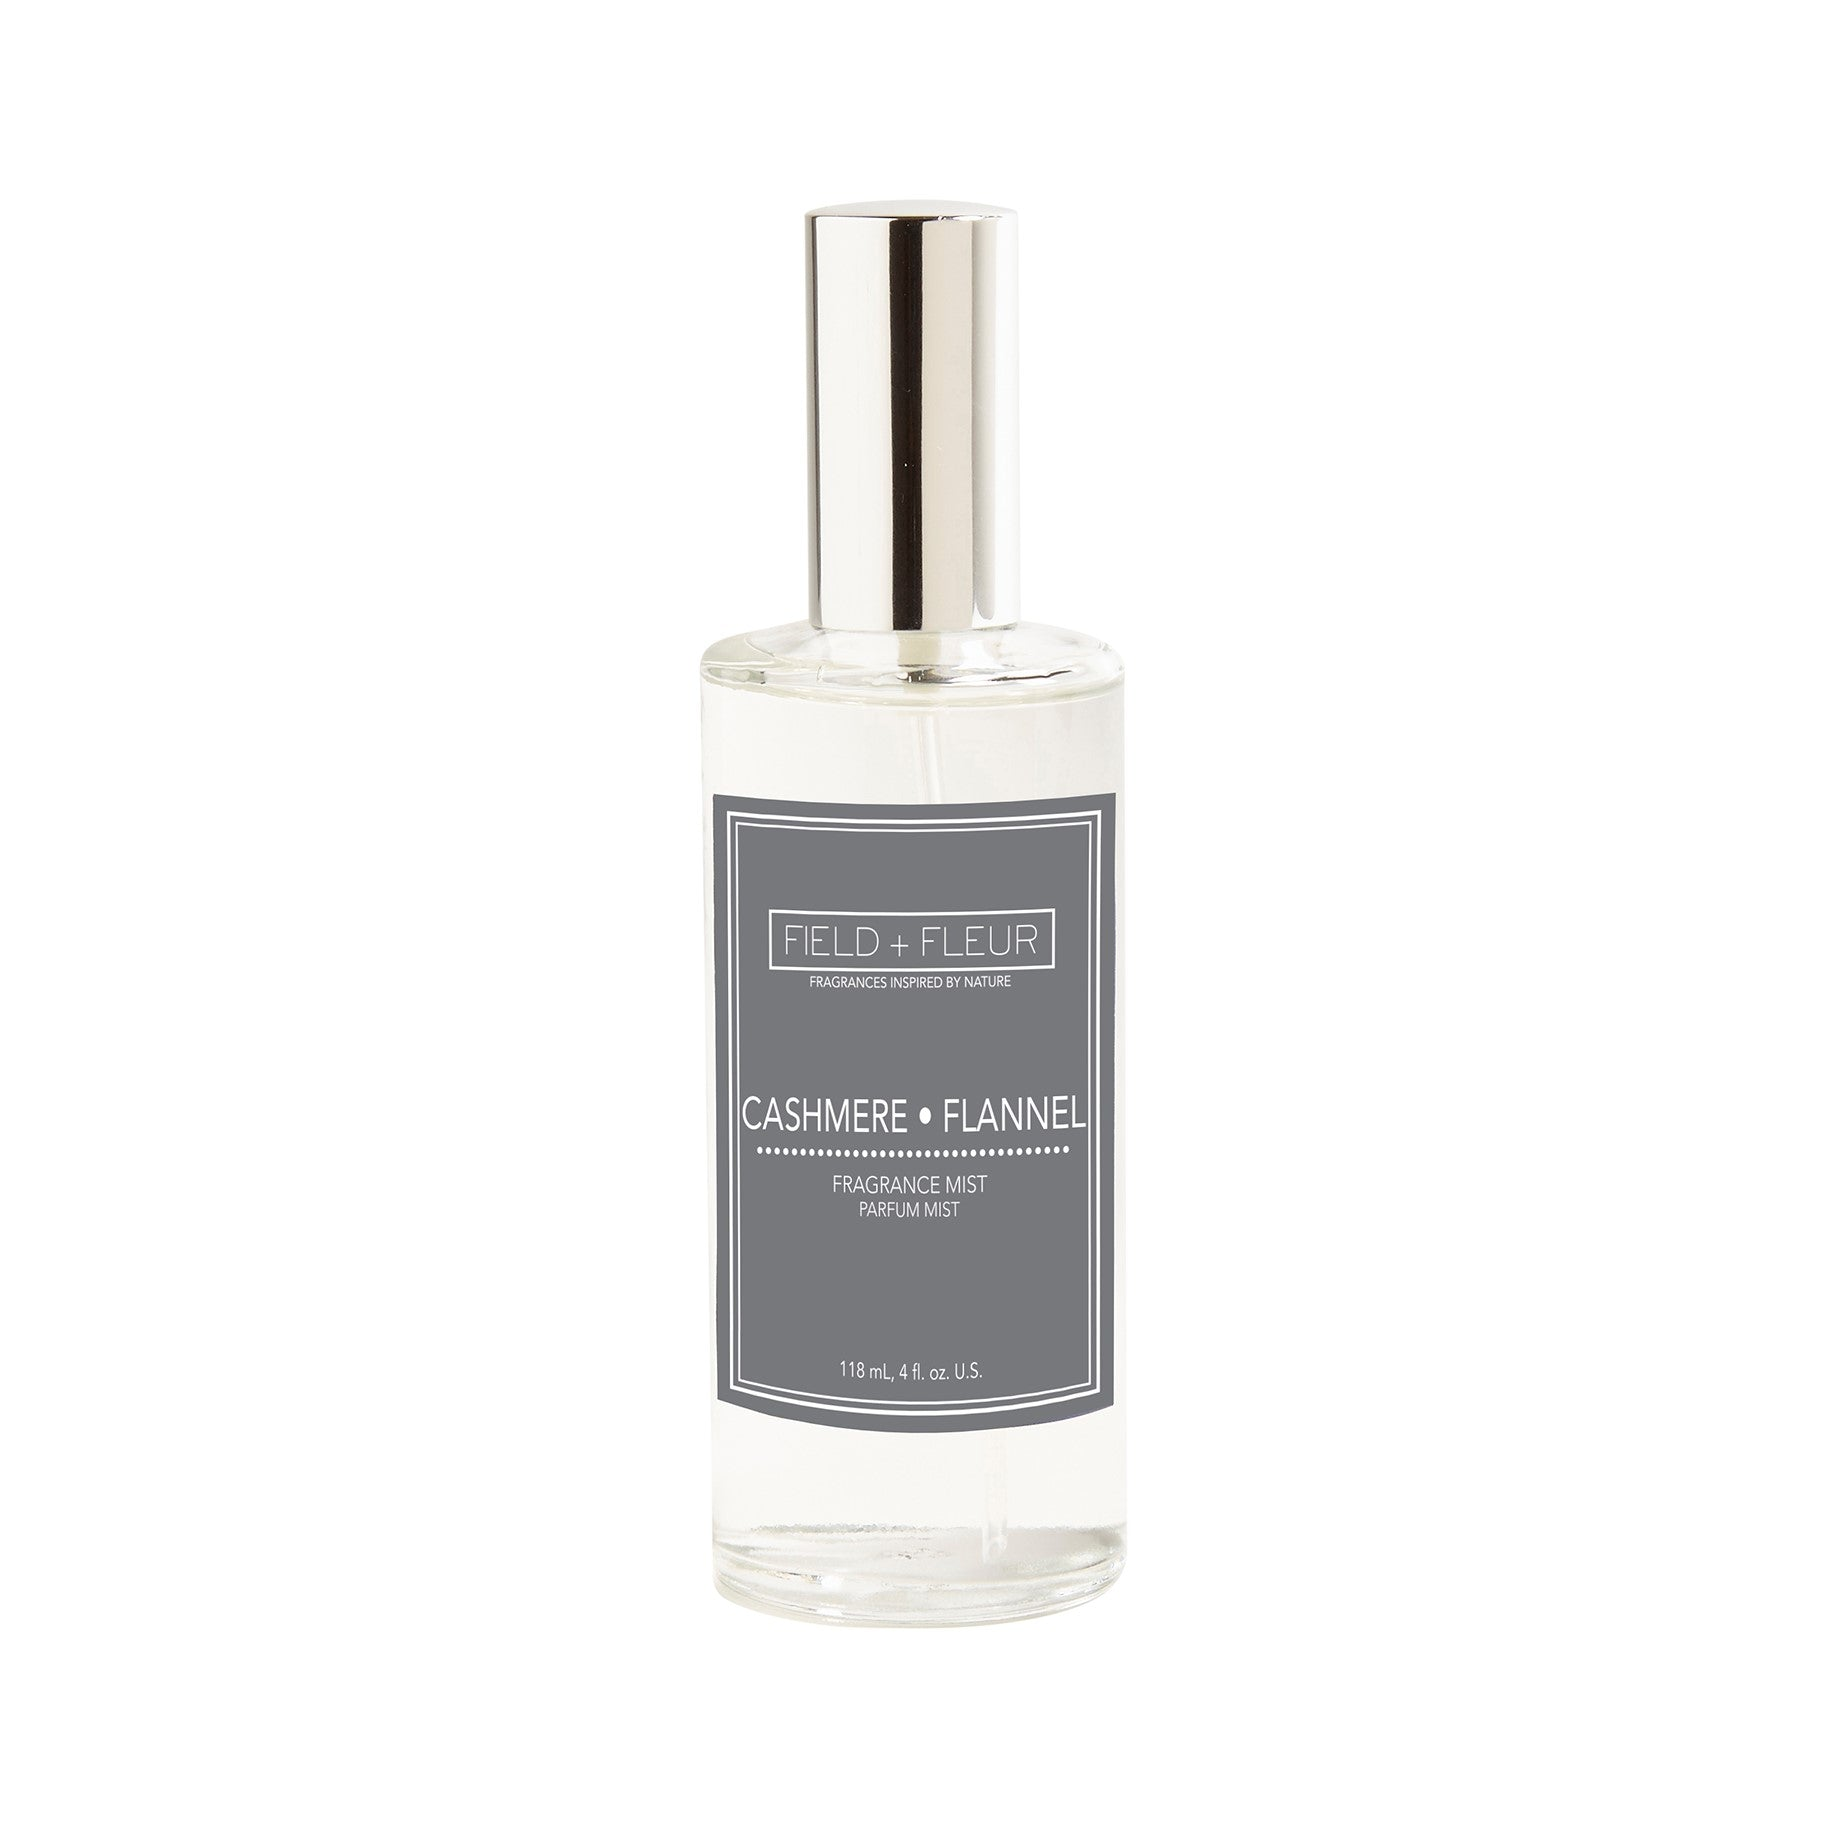 CASHMERE FLANNEL FRAGRANCE MIST 4OZ. - Scents Lifestyle Home Fragrances